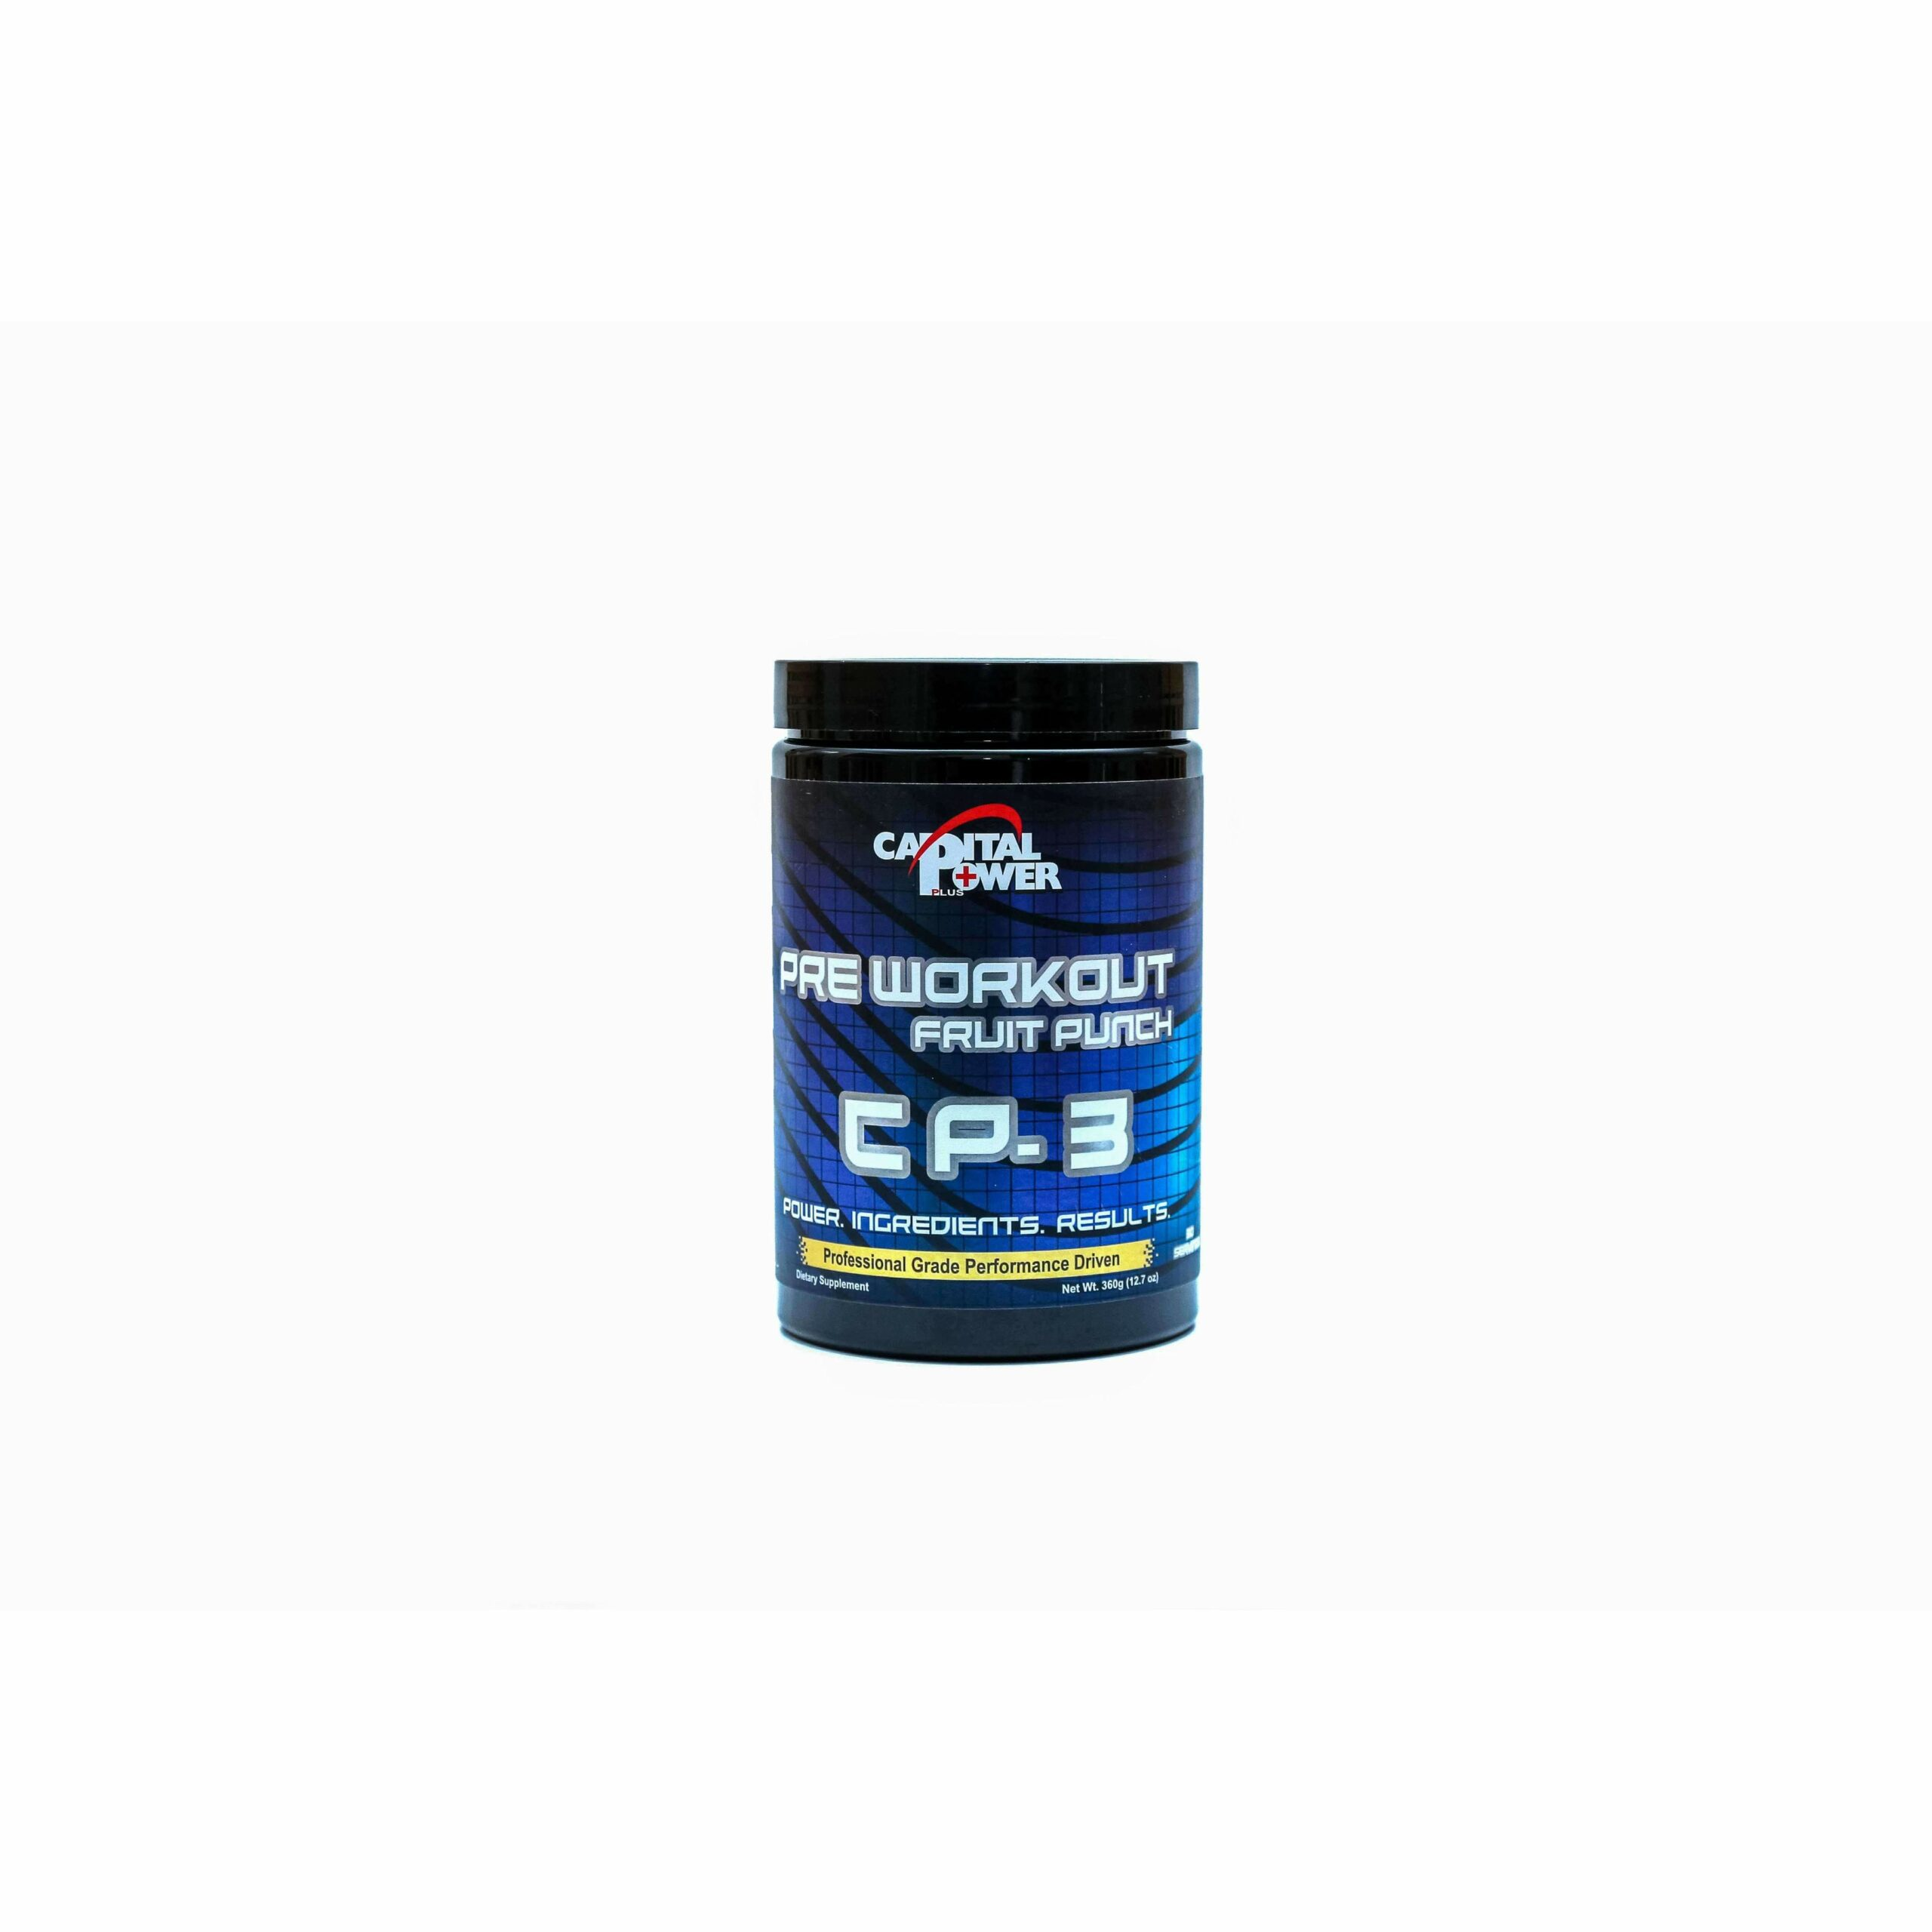 CapitalPowerPlus PreWorkout FruitPunch Front AMVITAMINS SANTAANA 8359925851174ed4beb7687ef0ae583d scaled